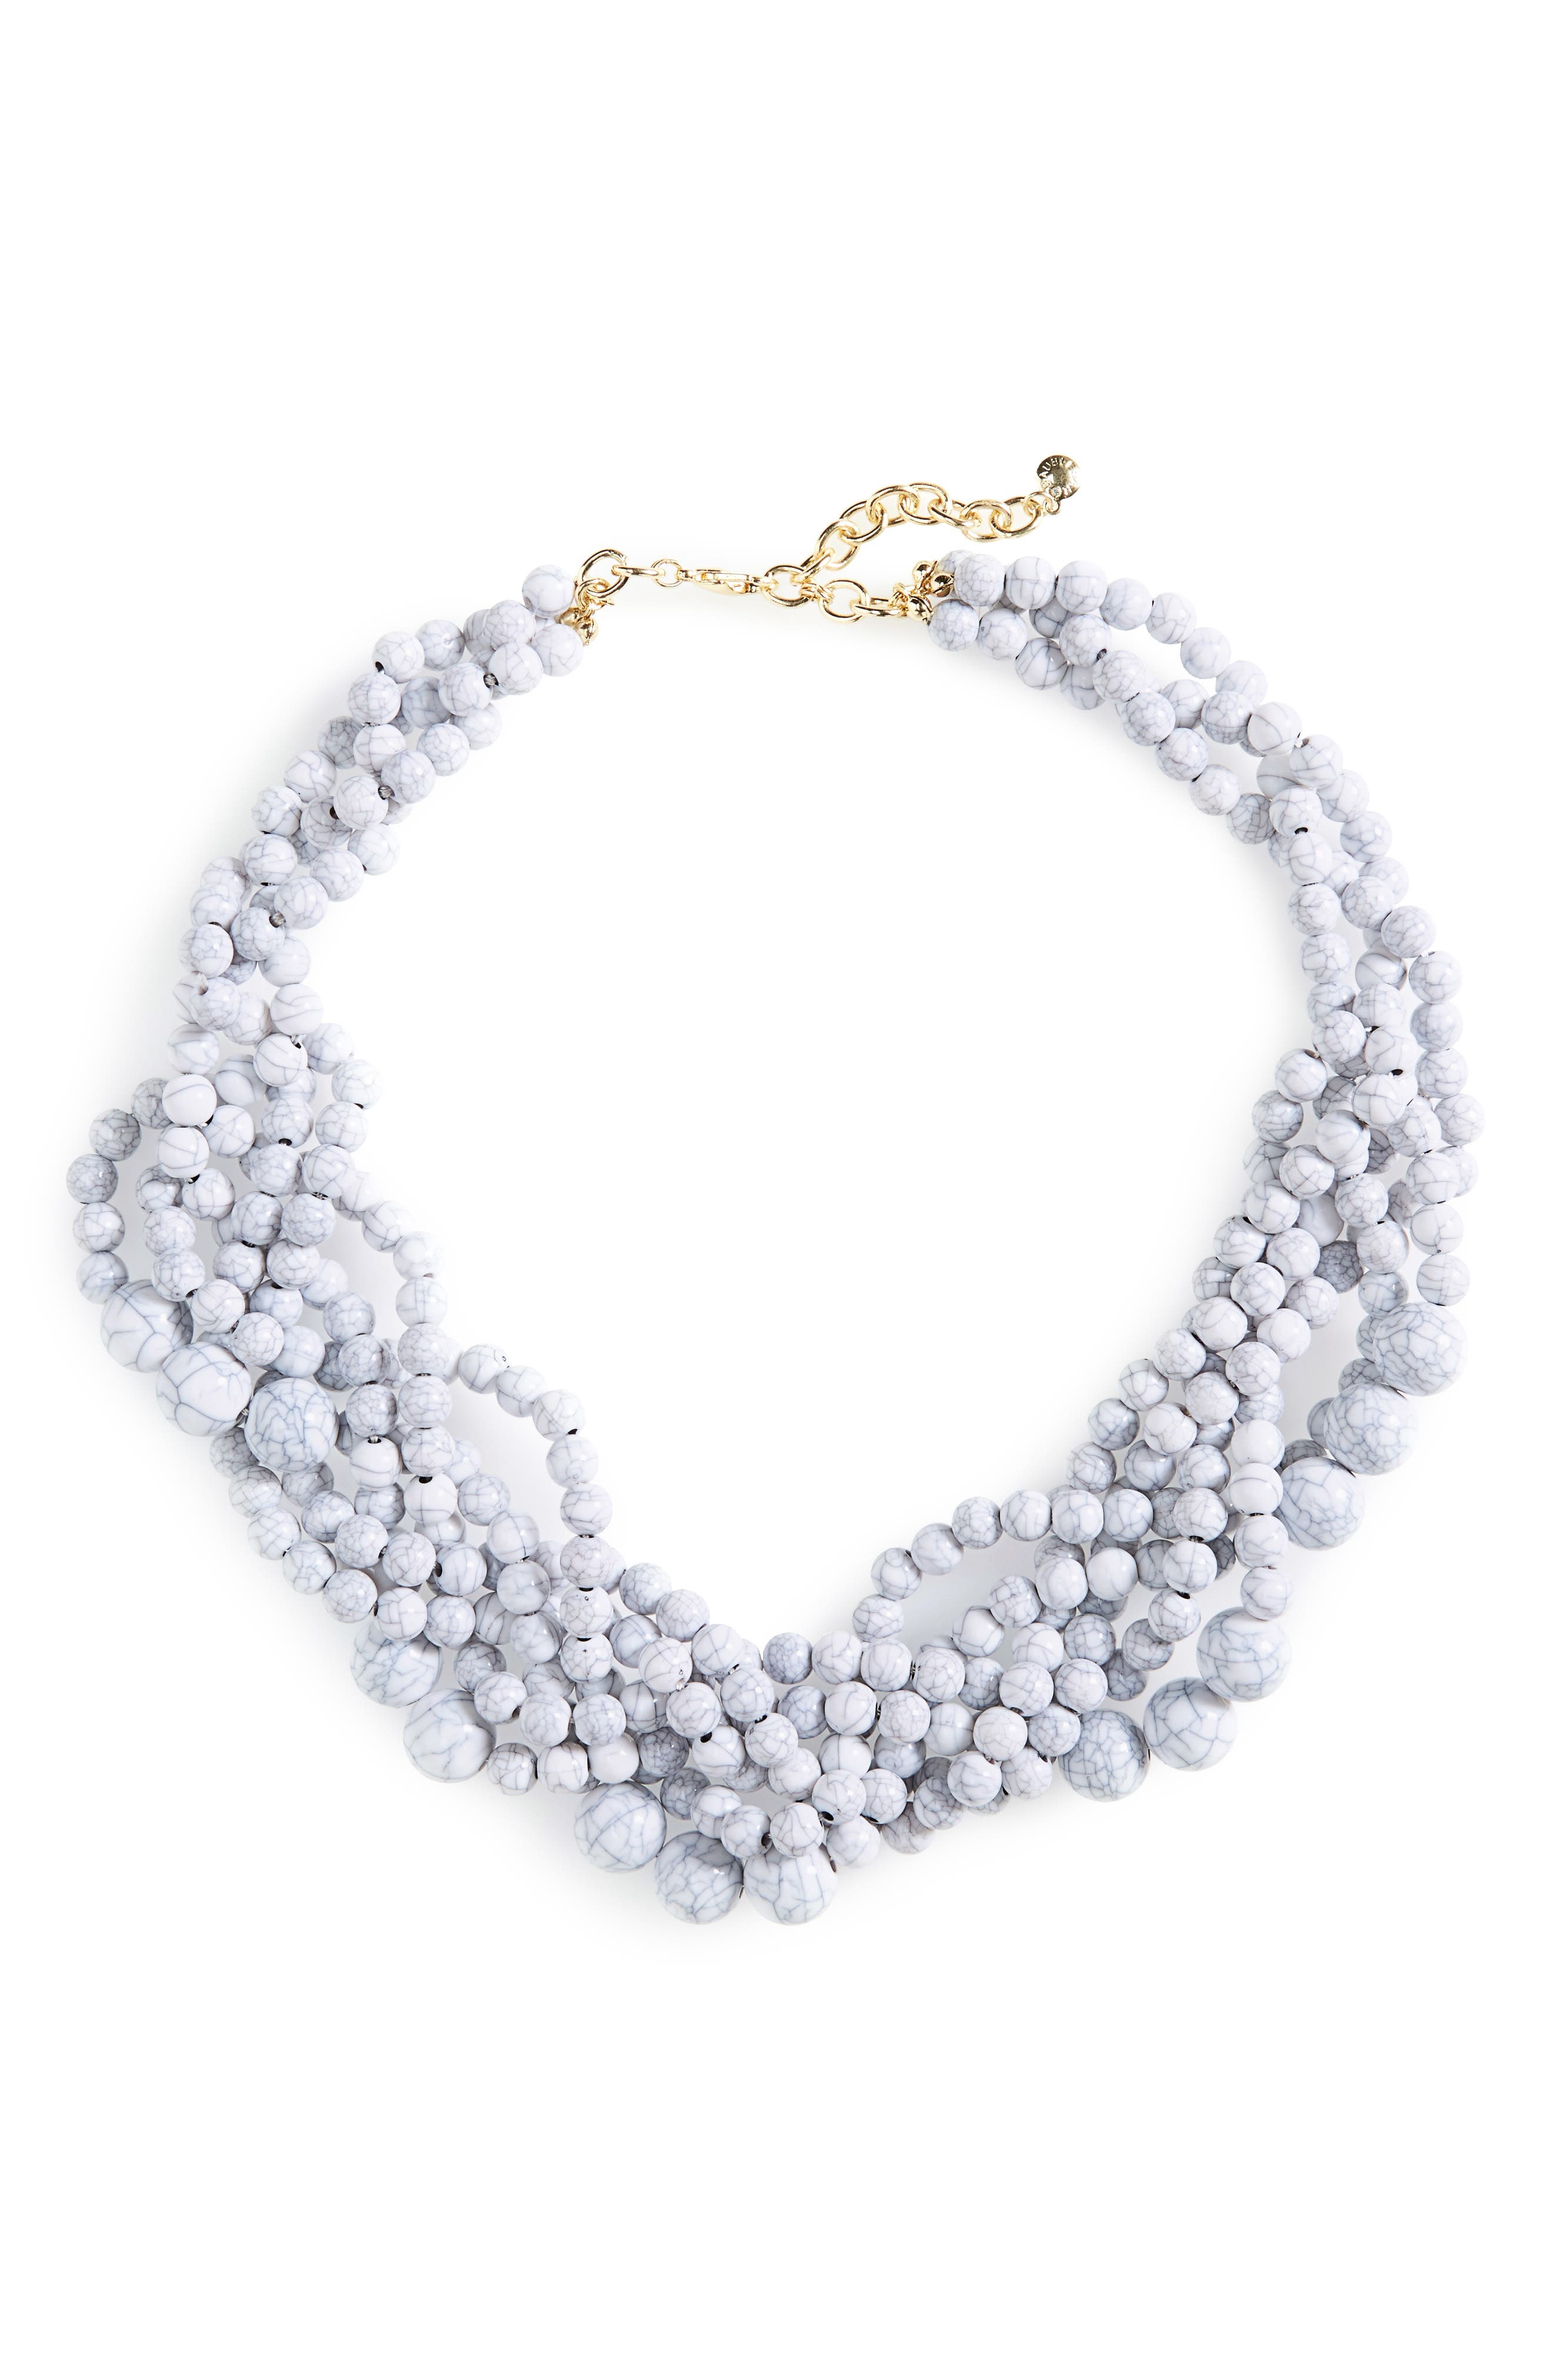 BAUBLEBAR 'Bubblestream' Collar Necklace